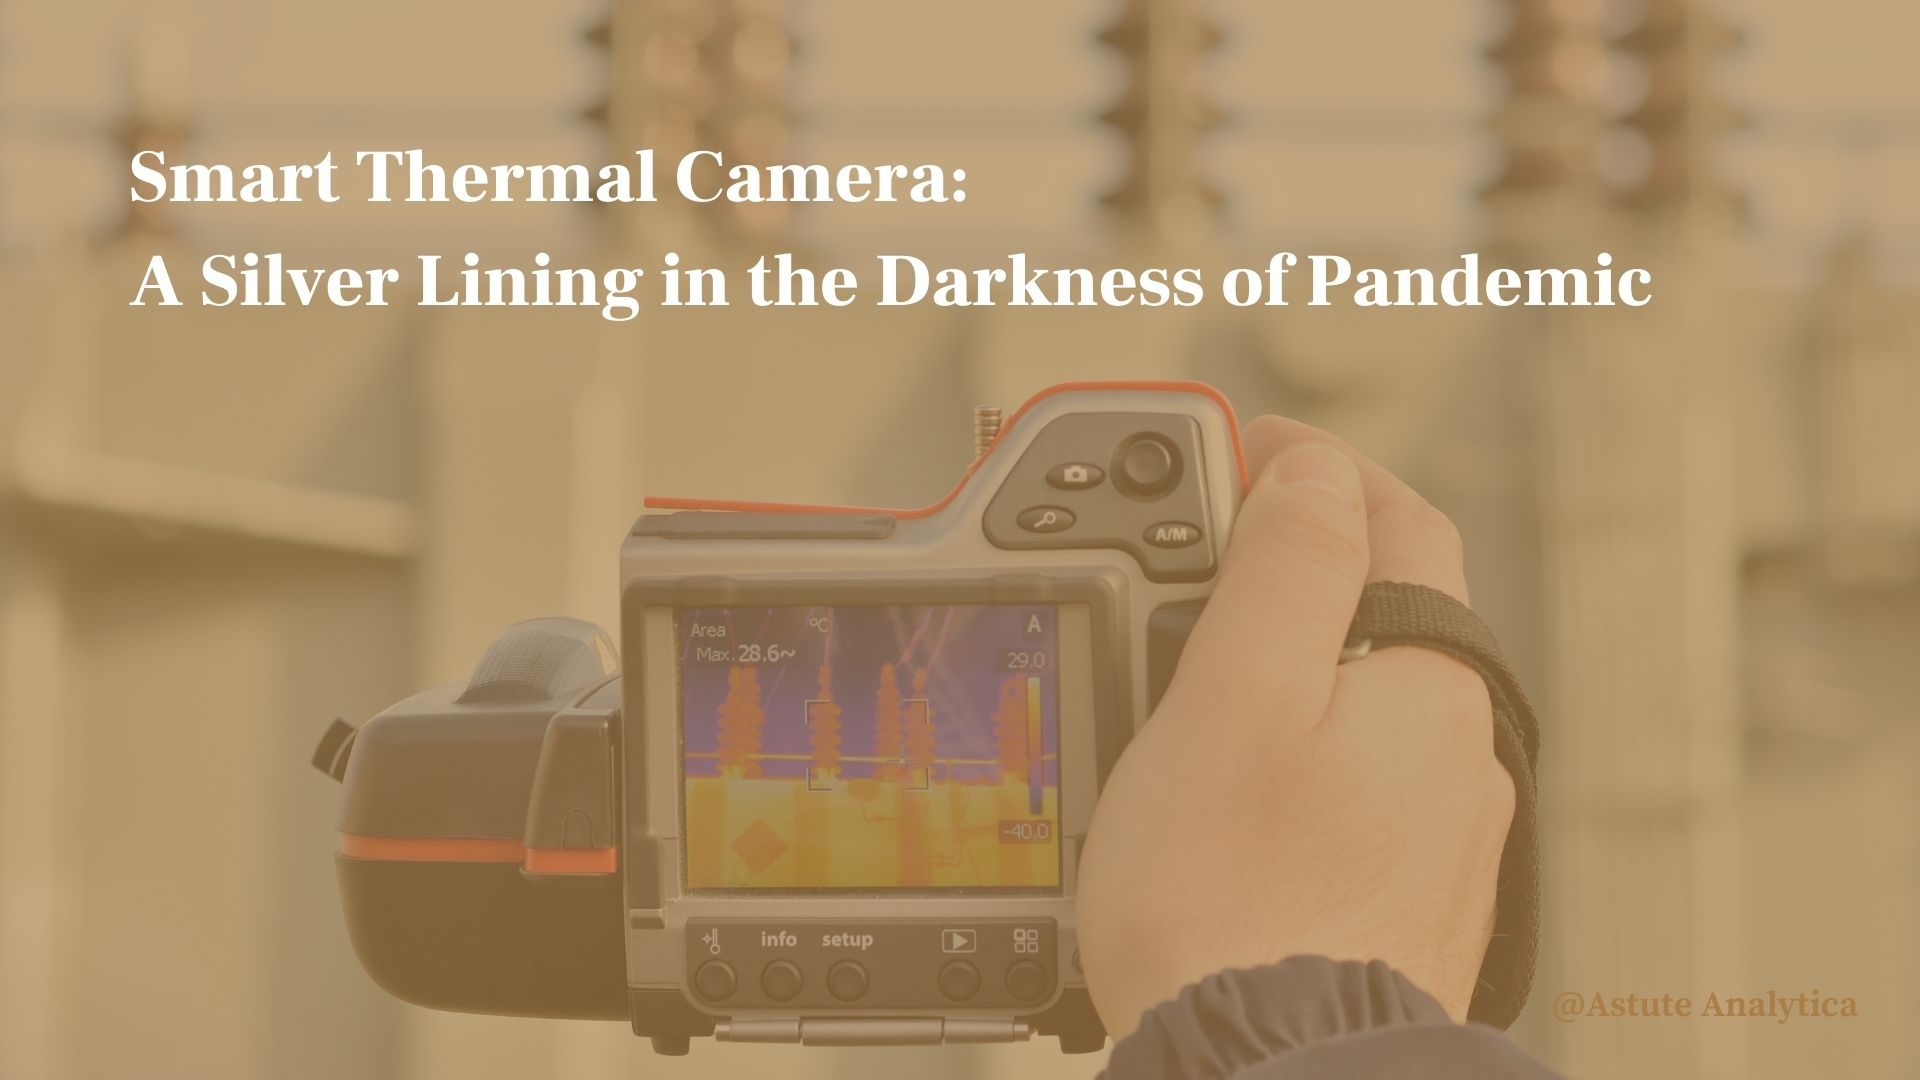 Smart Thermal Camera: A Silver Lining in the Darkness of Pandemic